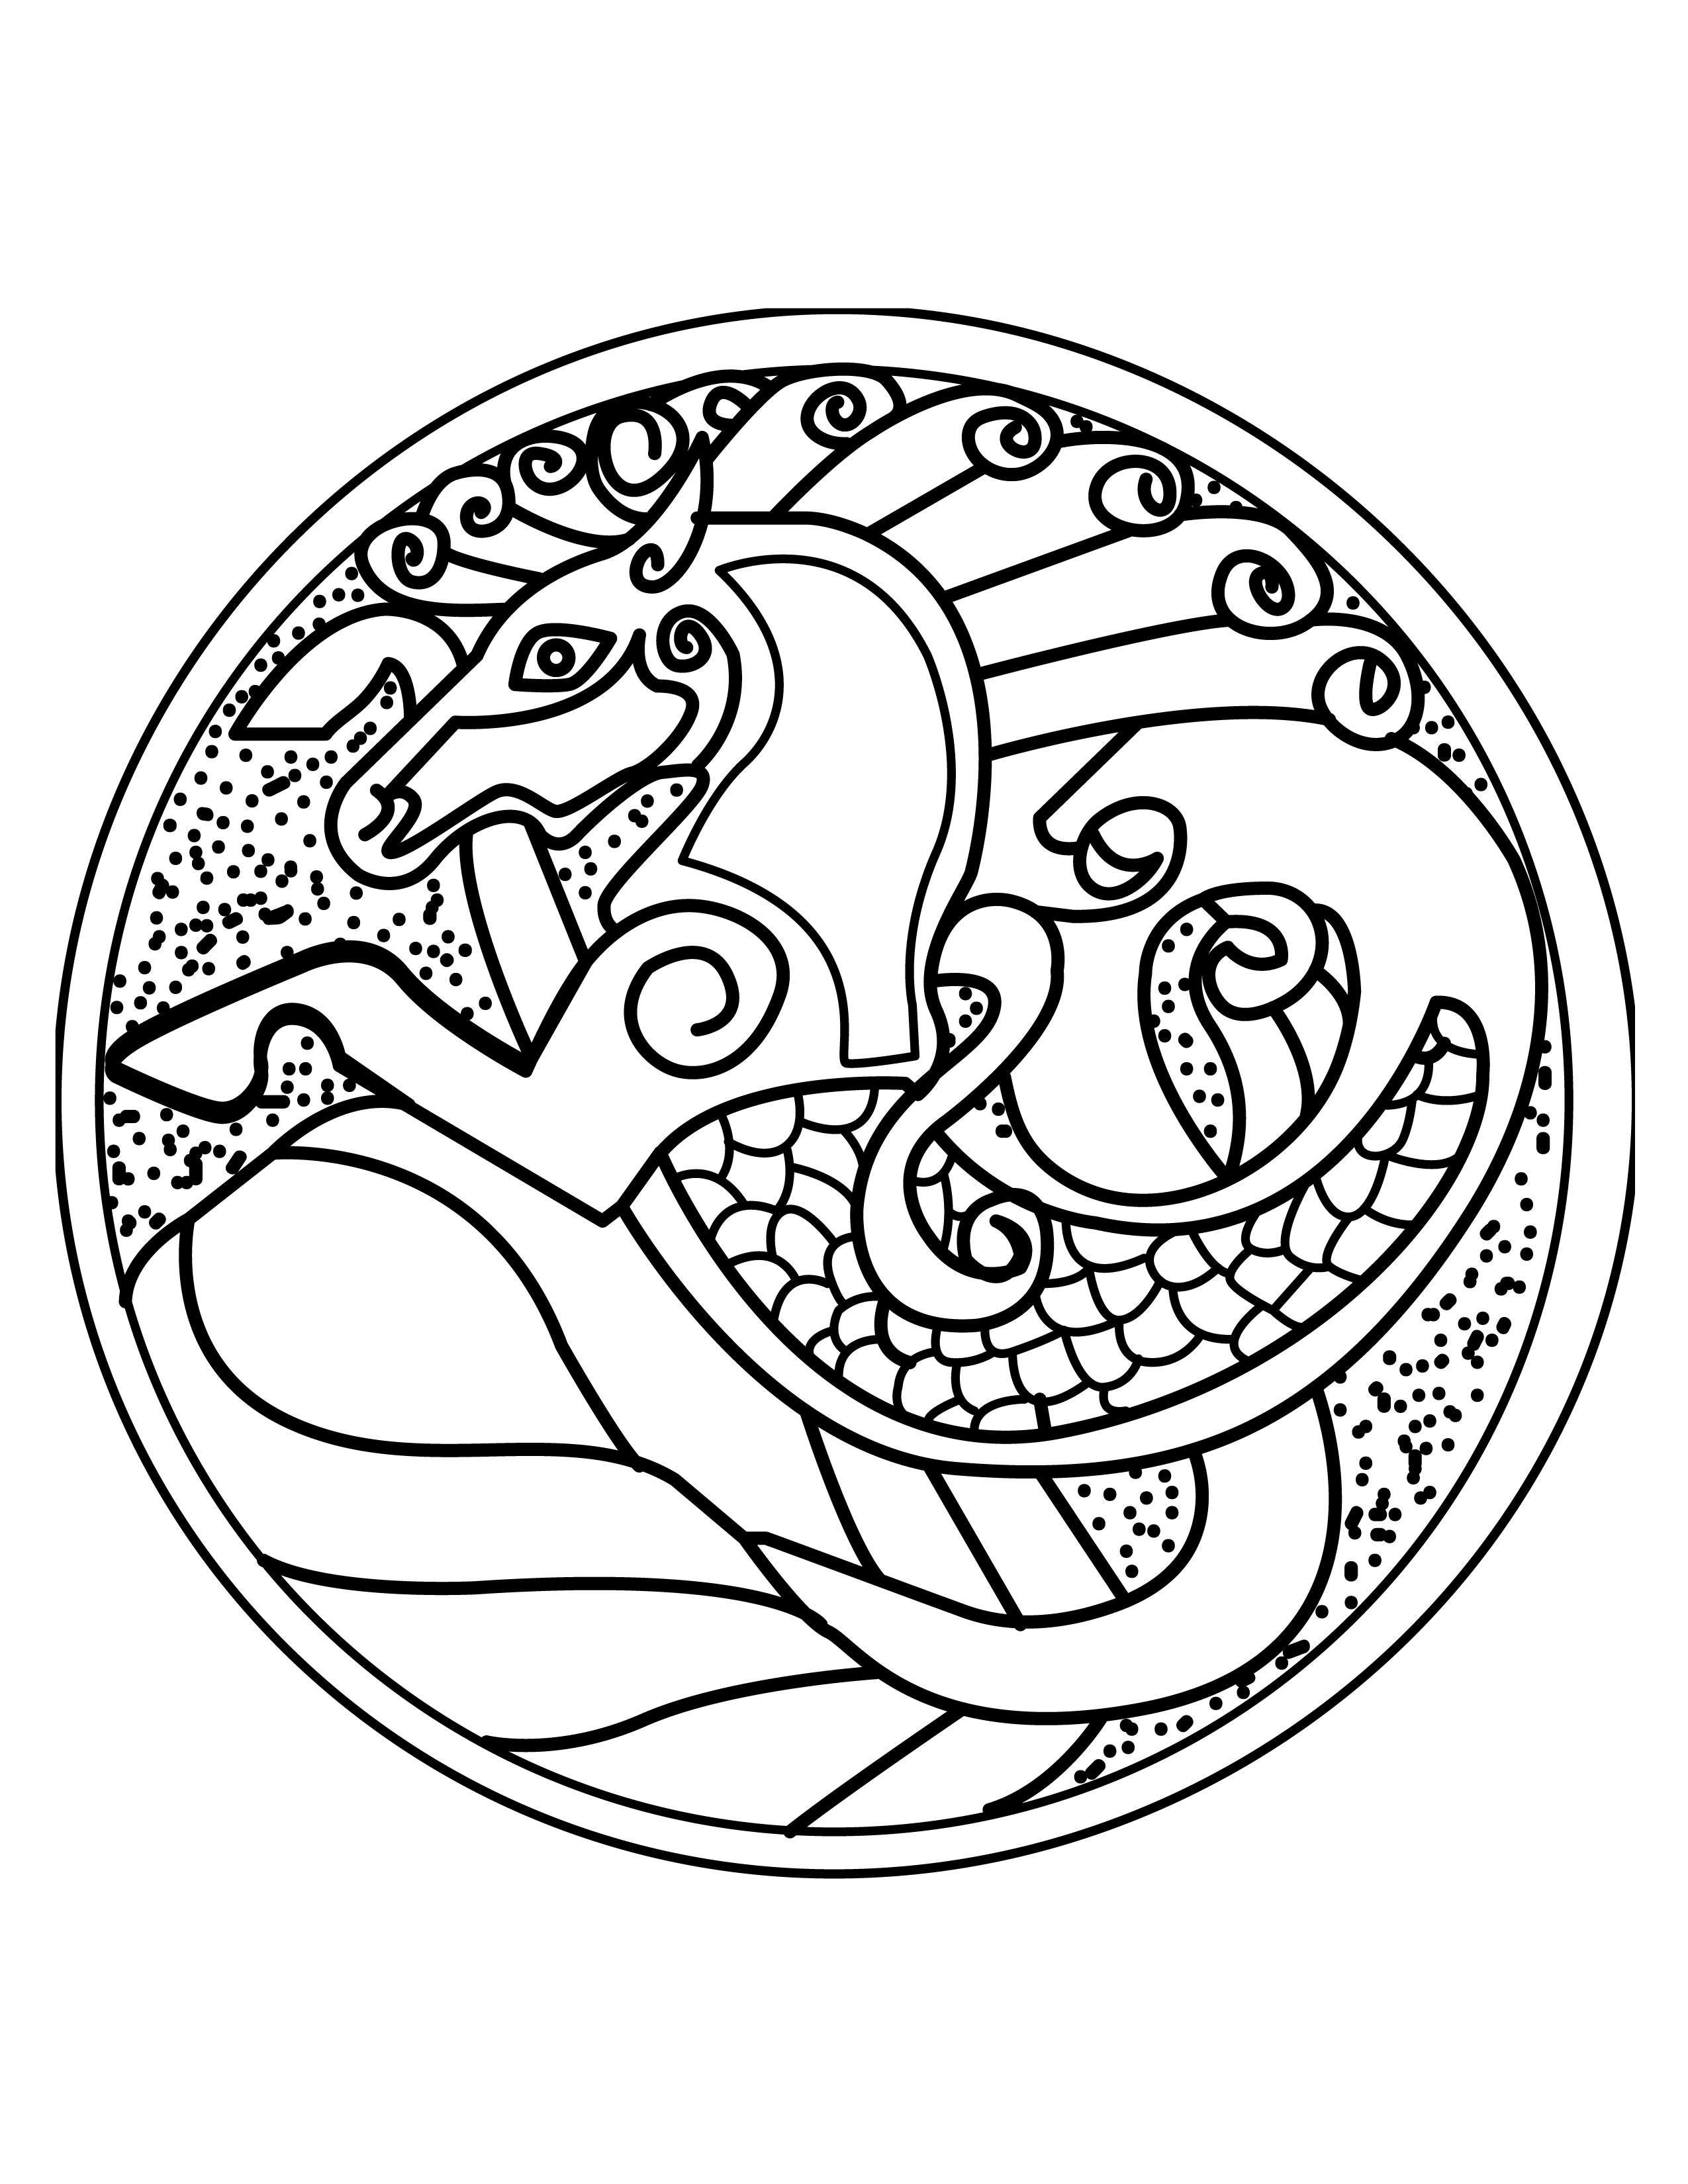 2550x3300 Colouring Pages